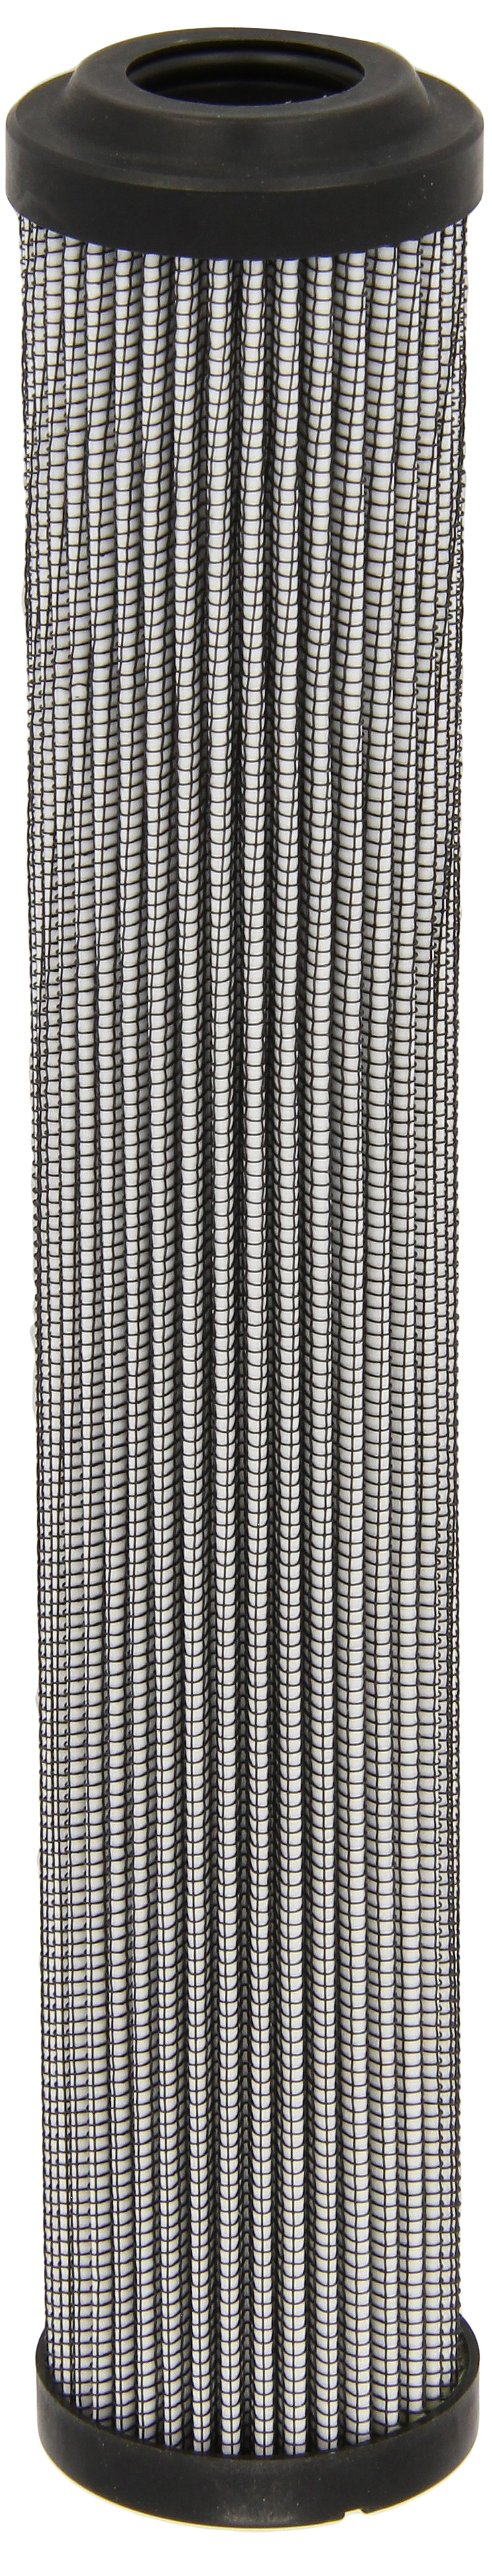 Bosch Rexroth R928006755 Micro-glass Filter Element, Cartridge Type, 0.87'' ID x 1.77'' OD x 9.84'' Tall, 10 Micron (Absolute), Without Bypass Valve; Removes Particle Contaminants and Protects Hydraulic Systems